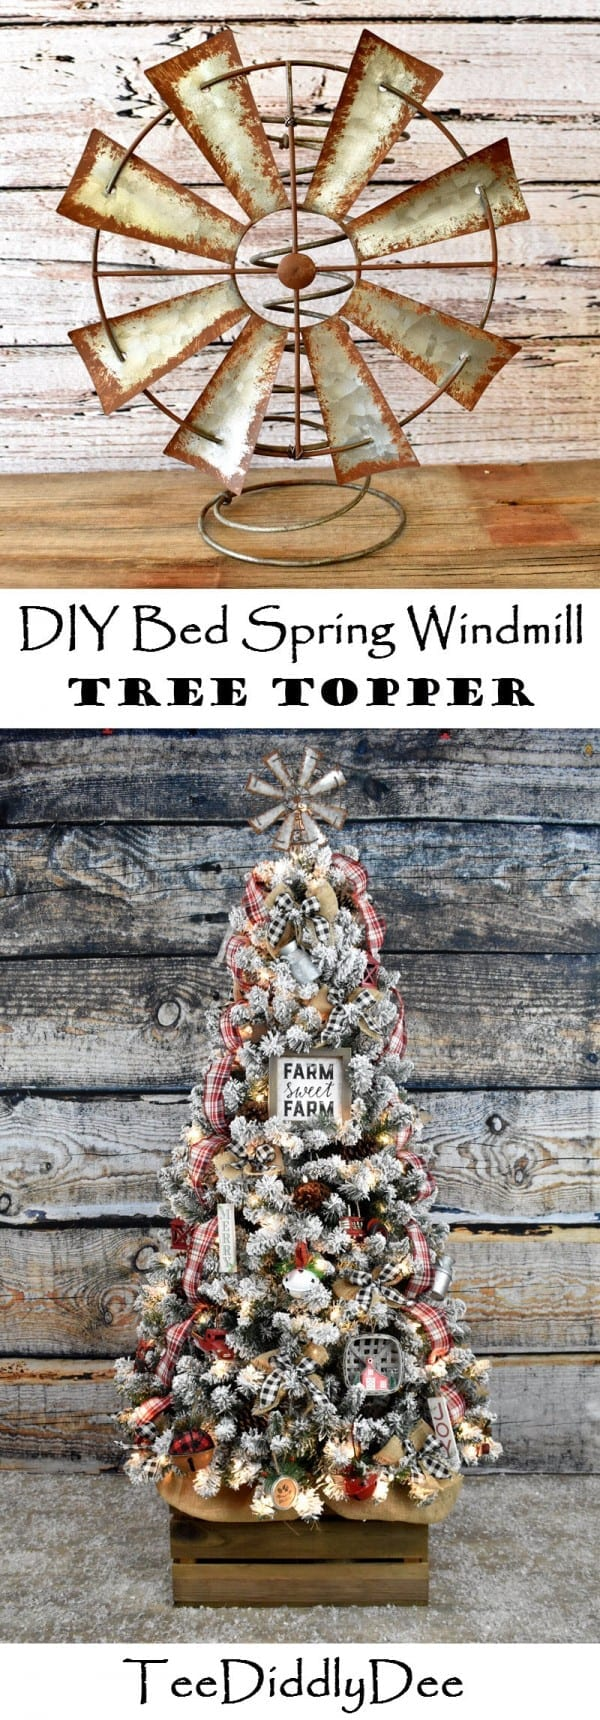 Diy Bed Spring Windmill Christmas Tree Topper Vintage Rustic Farmhouse